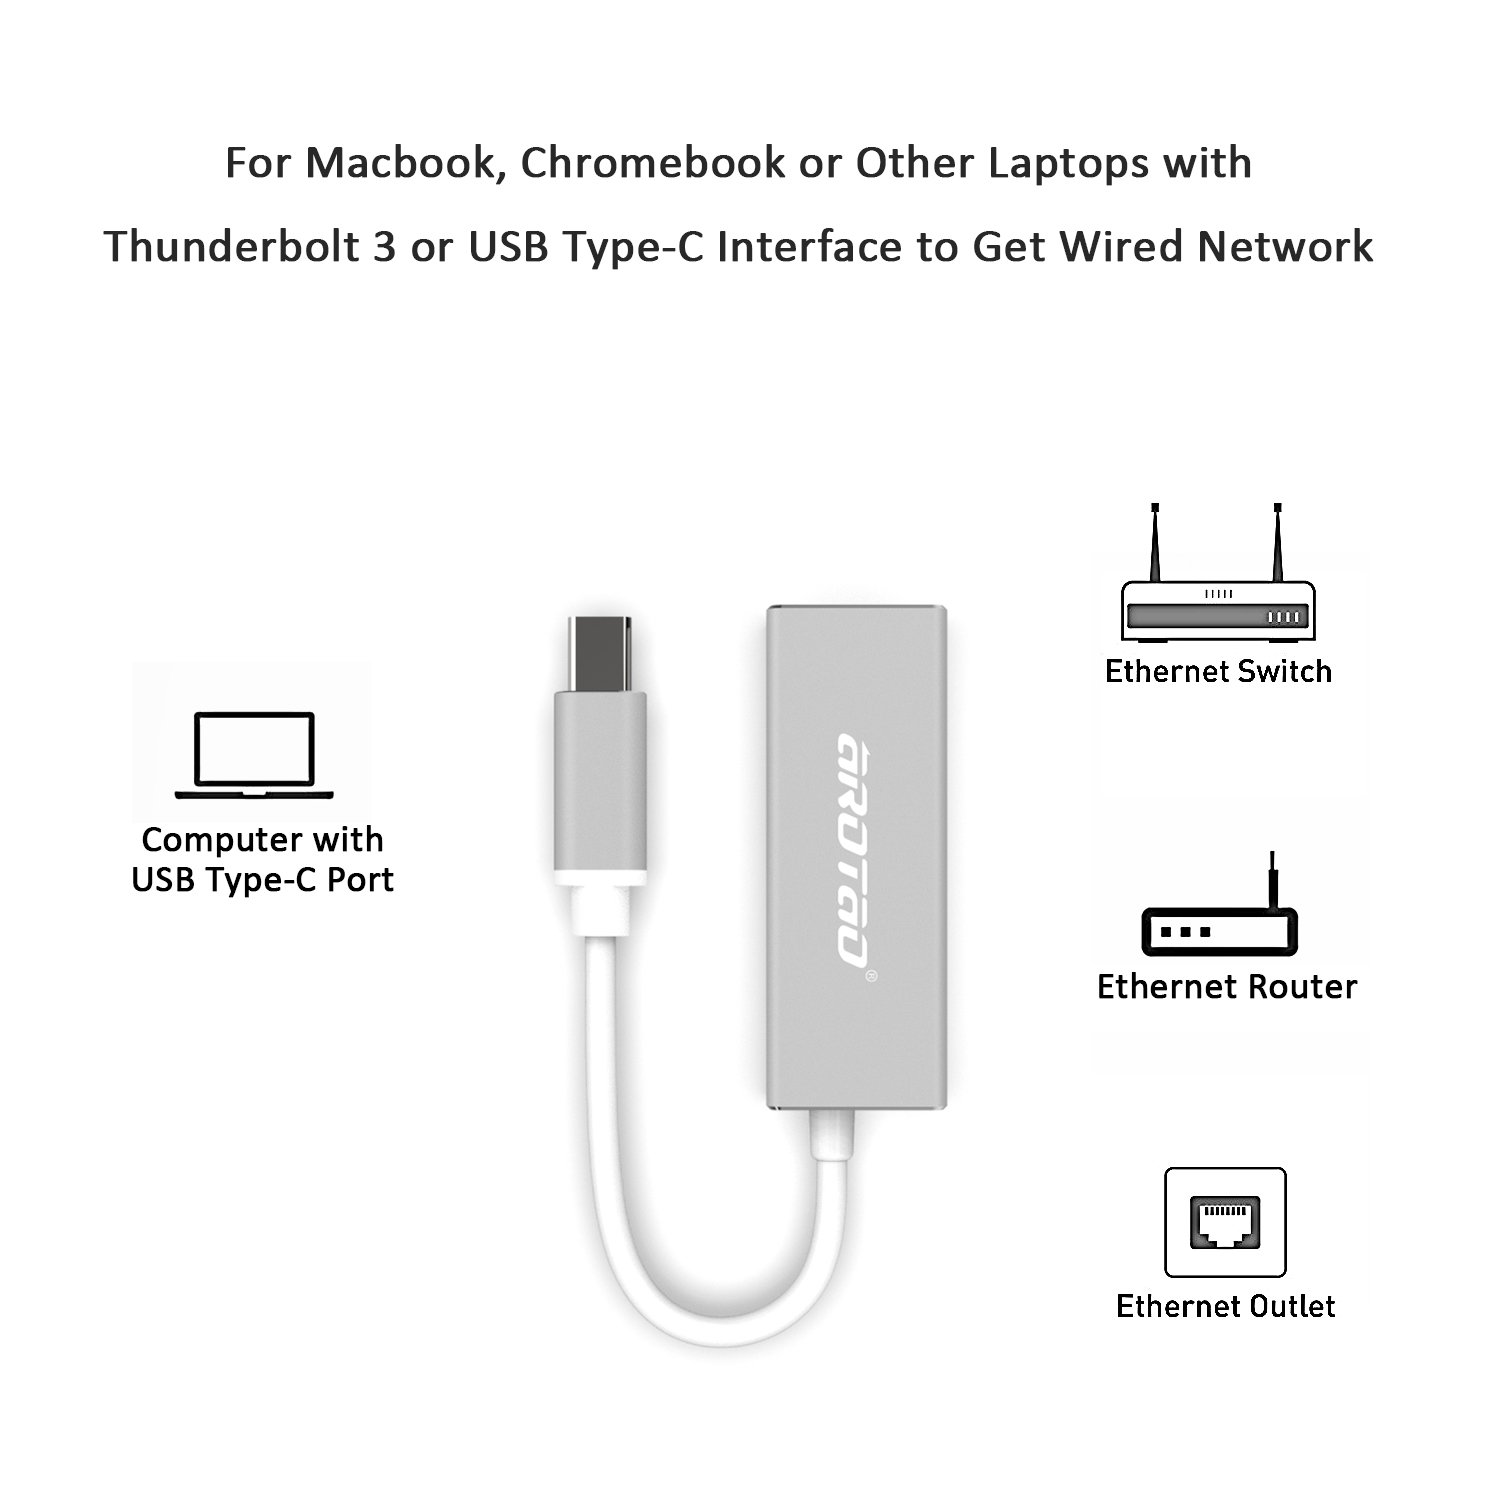 aROTaO USB-C to Ethernet Adapter, USB 3.1 Type C (Thunderbolt 3) to RJ45 Gigabit Ethernet LAN Network Adapter 1 Indicator Compatible for MacBook,MacBook Pro,ChromeBook Pixel and Other Type C Devices by aROTaO (Image #2)